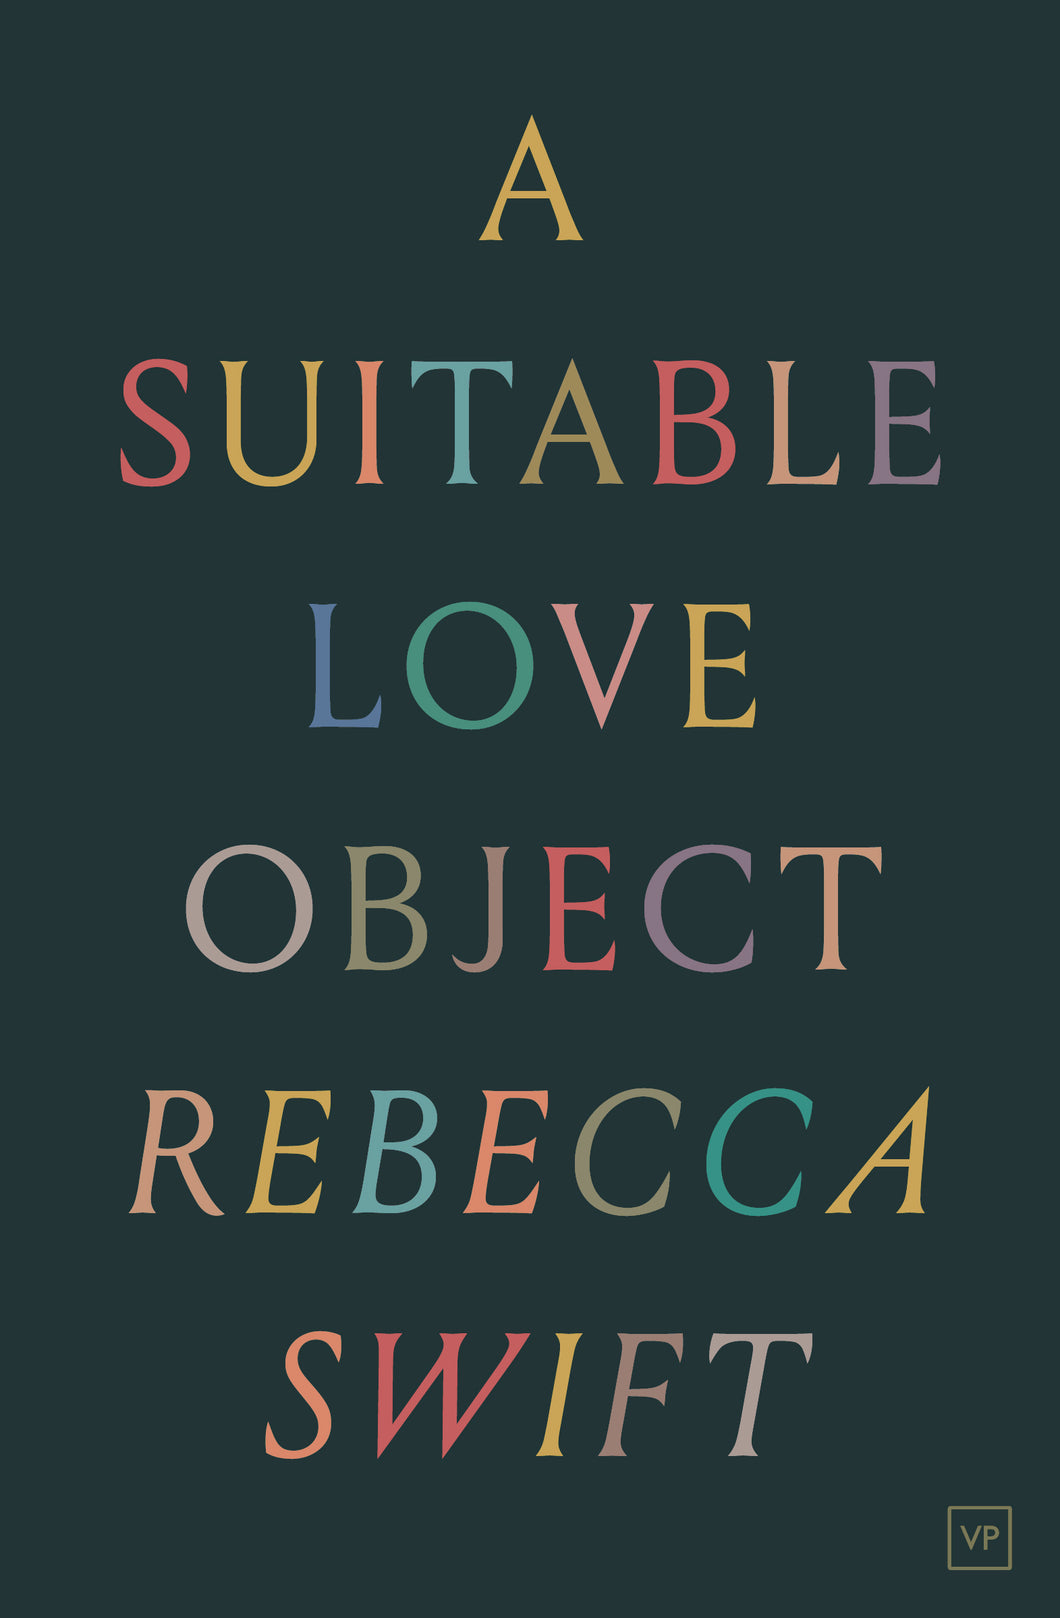 A Suitable Love Object